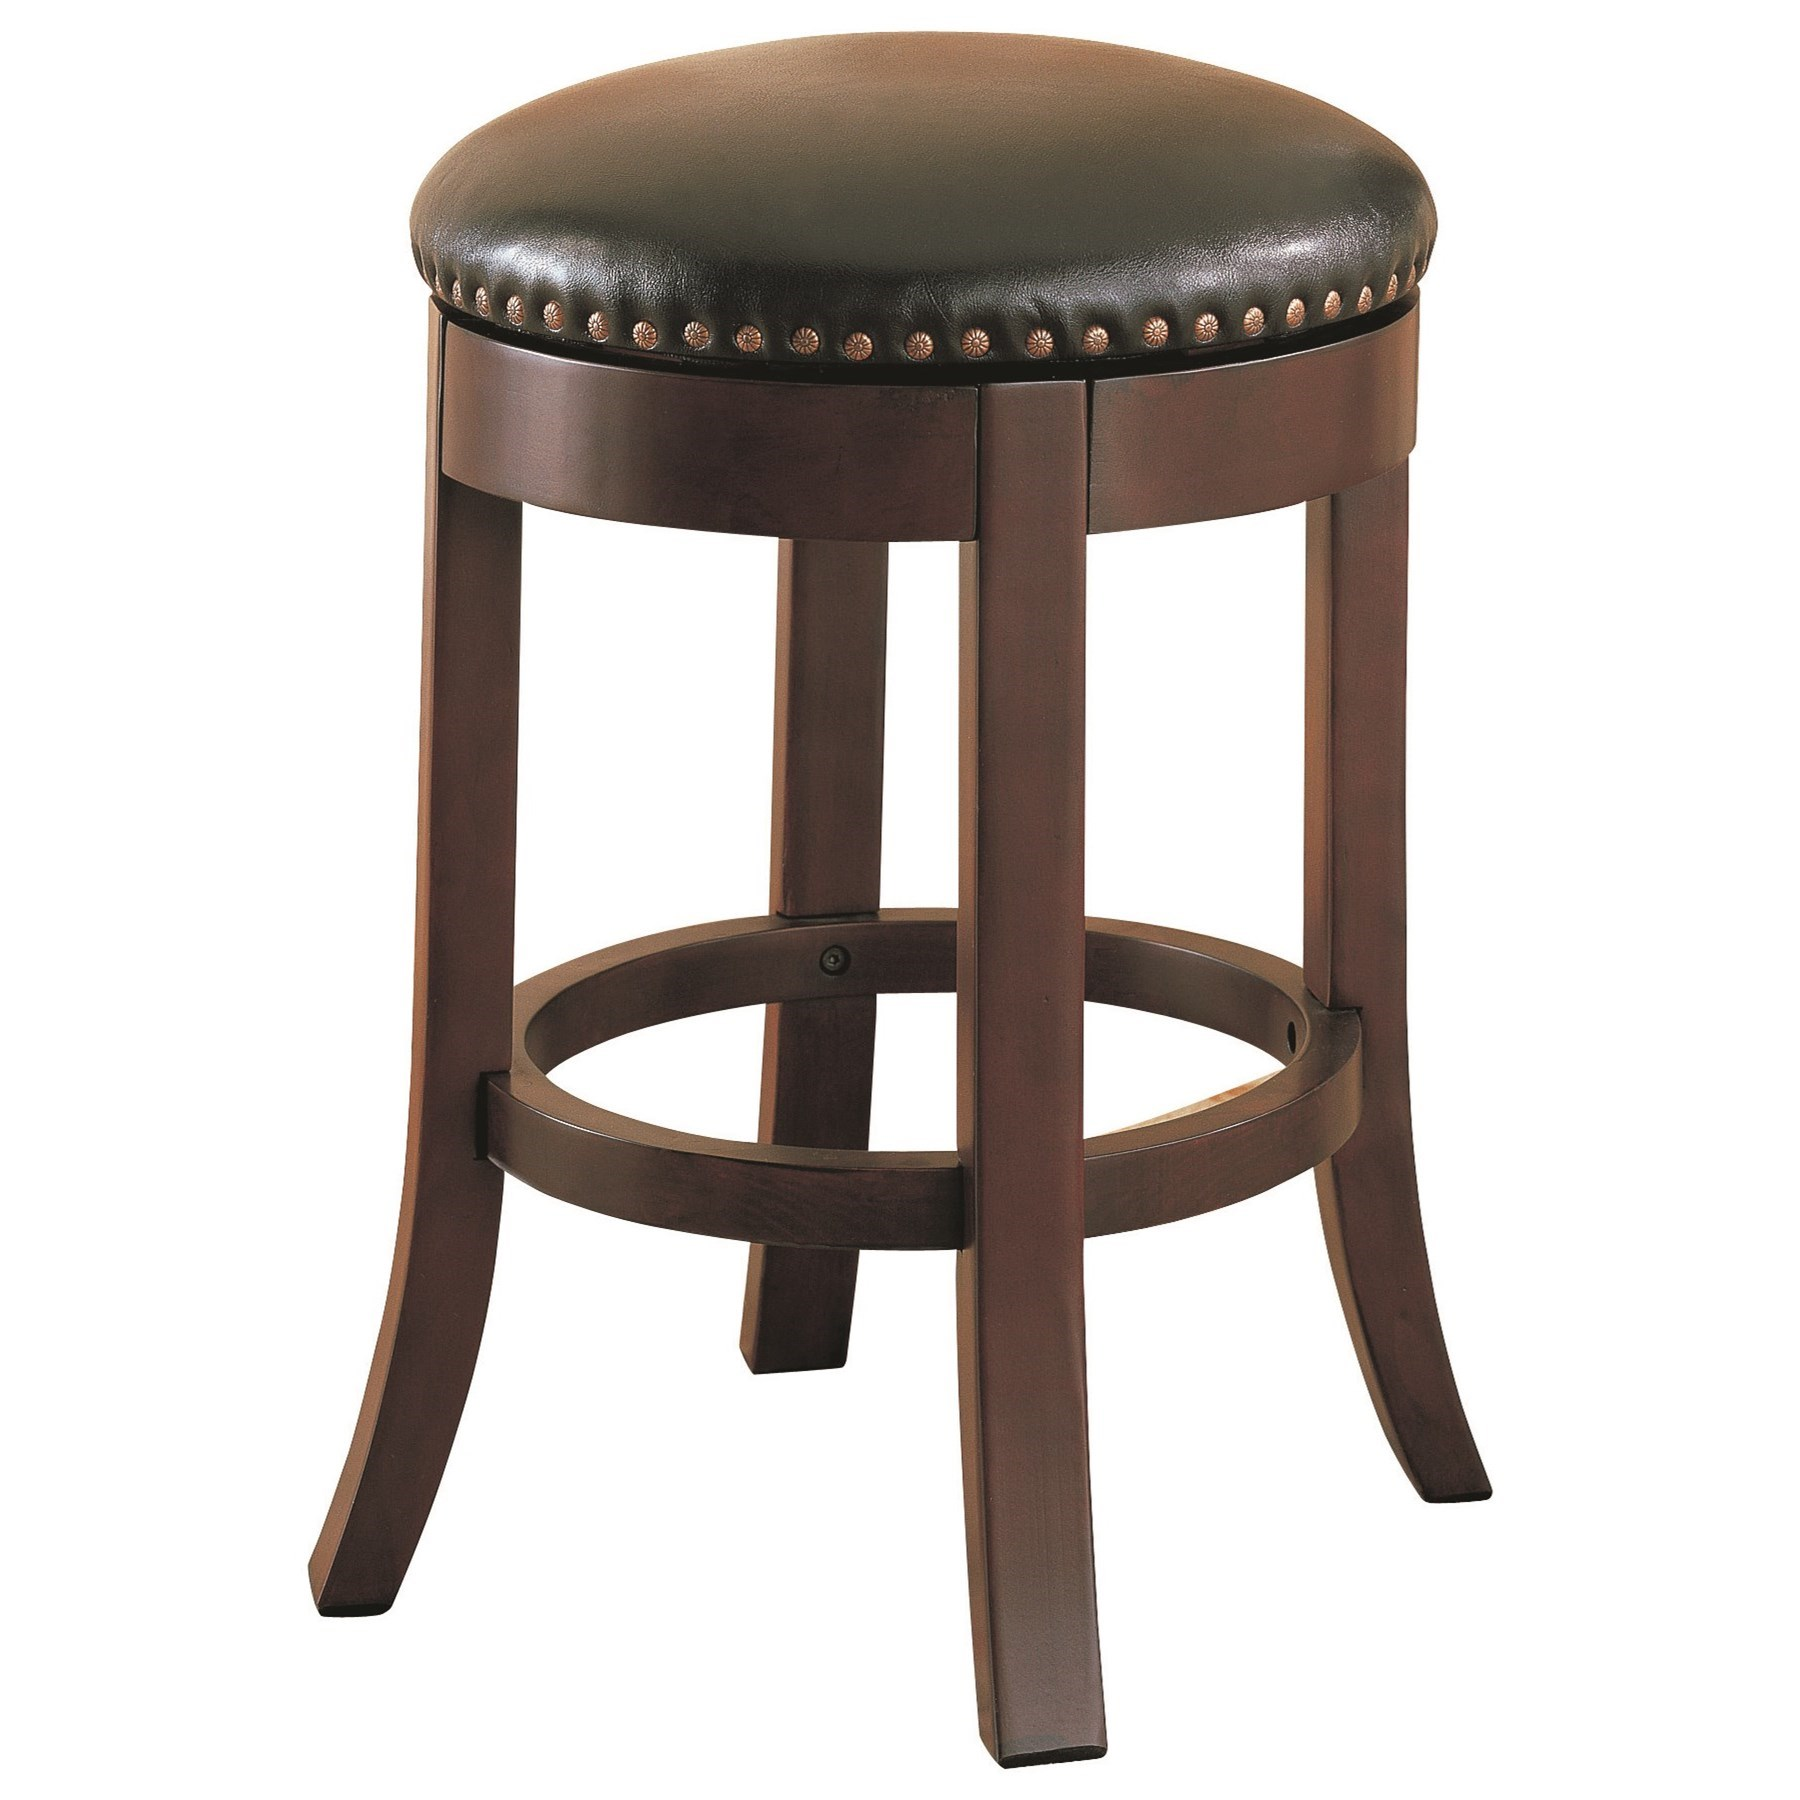 "Coaster Dining Chairs and Bar Stools 24"" Swivel Bar Stool with Upholstered Seat - Item Number: 101059"